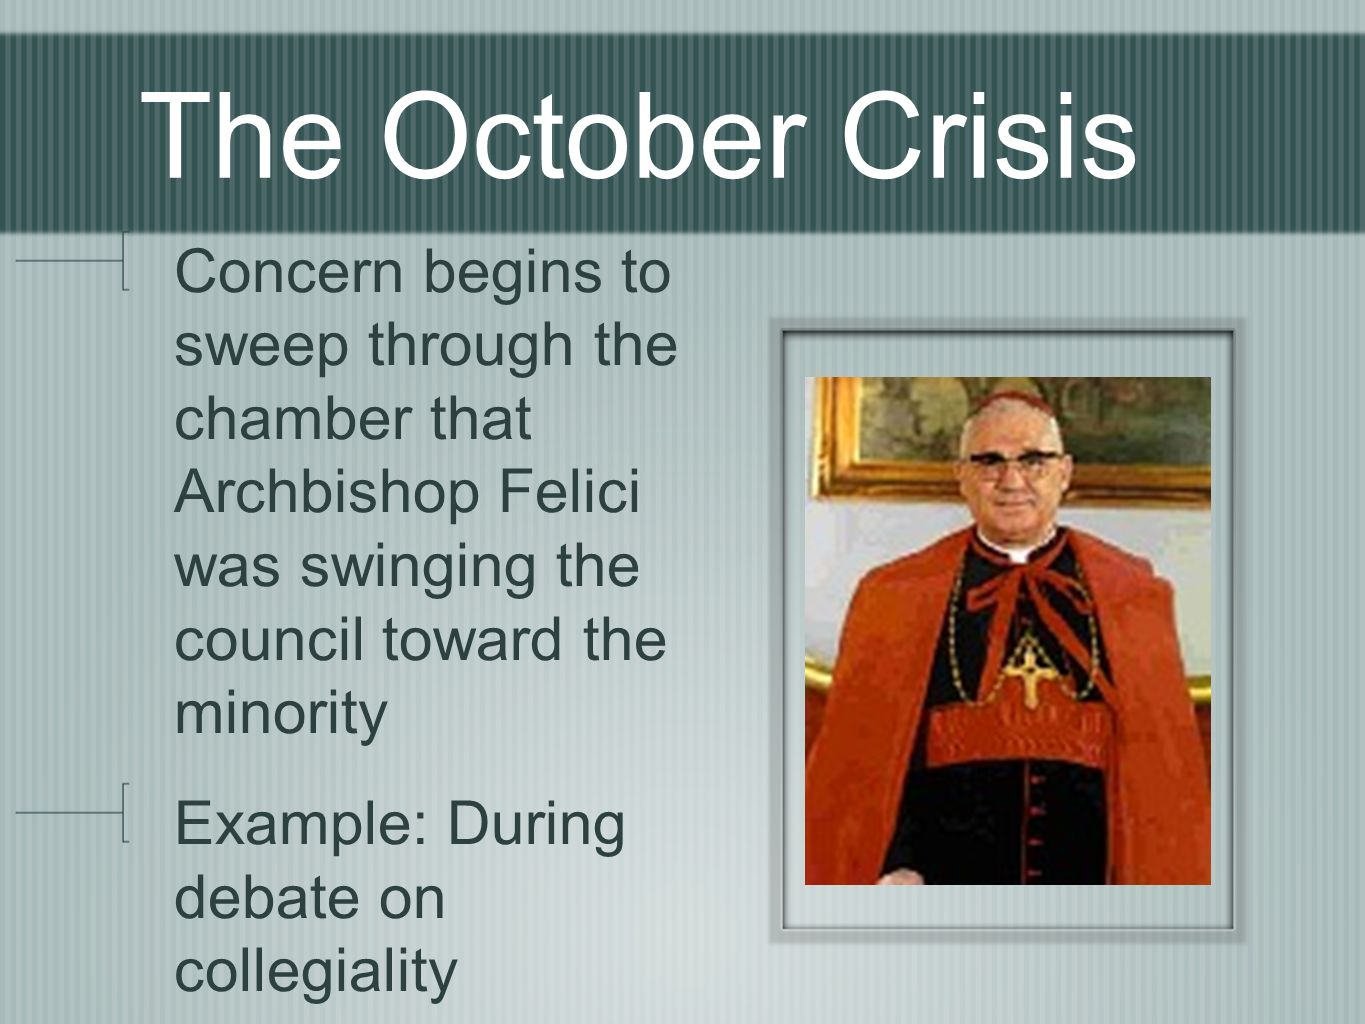 The October Crisis Concern begins to sweep through the chamber that Archbishop Felici was swinging the council toward the minority Example: During debate on collegiality